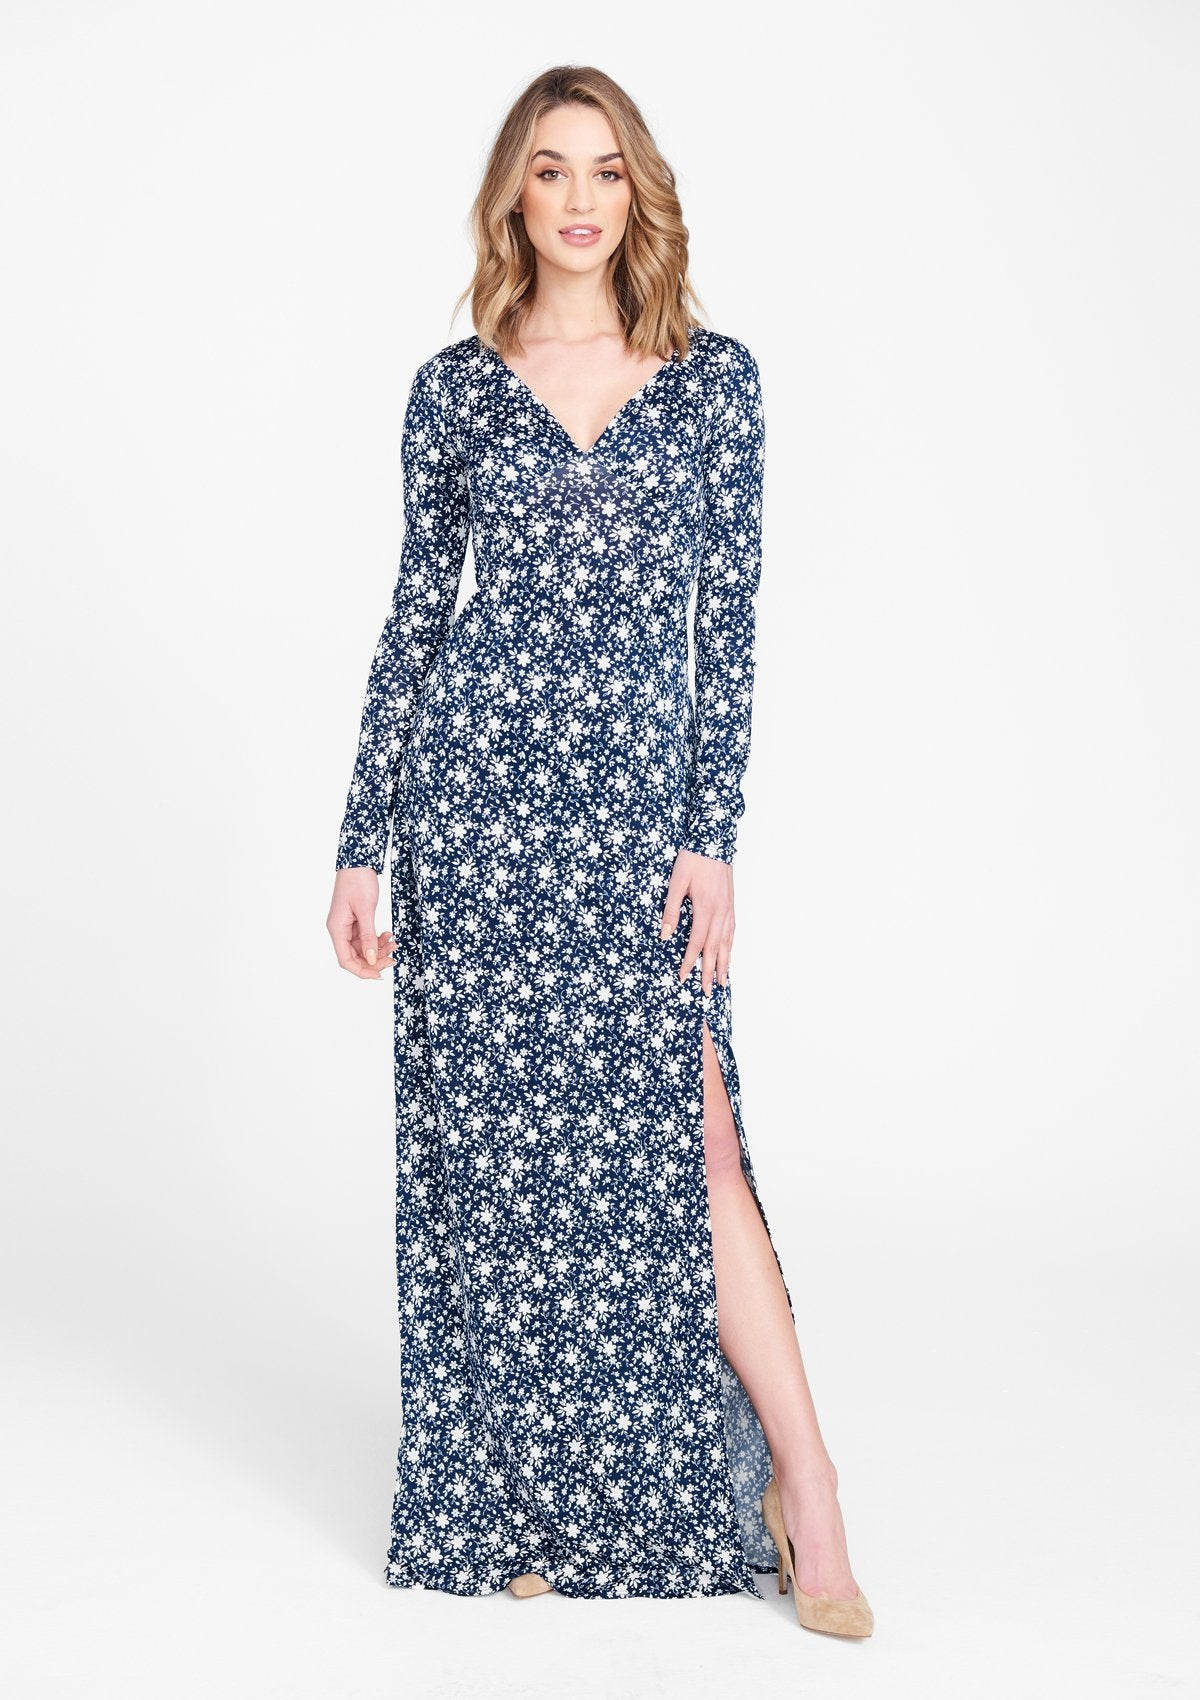 Alloy Apparel Tall Maxi Slit Dress for Women in Navy Print Size L   Polyester